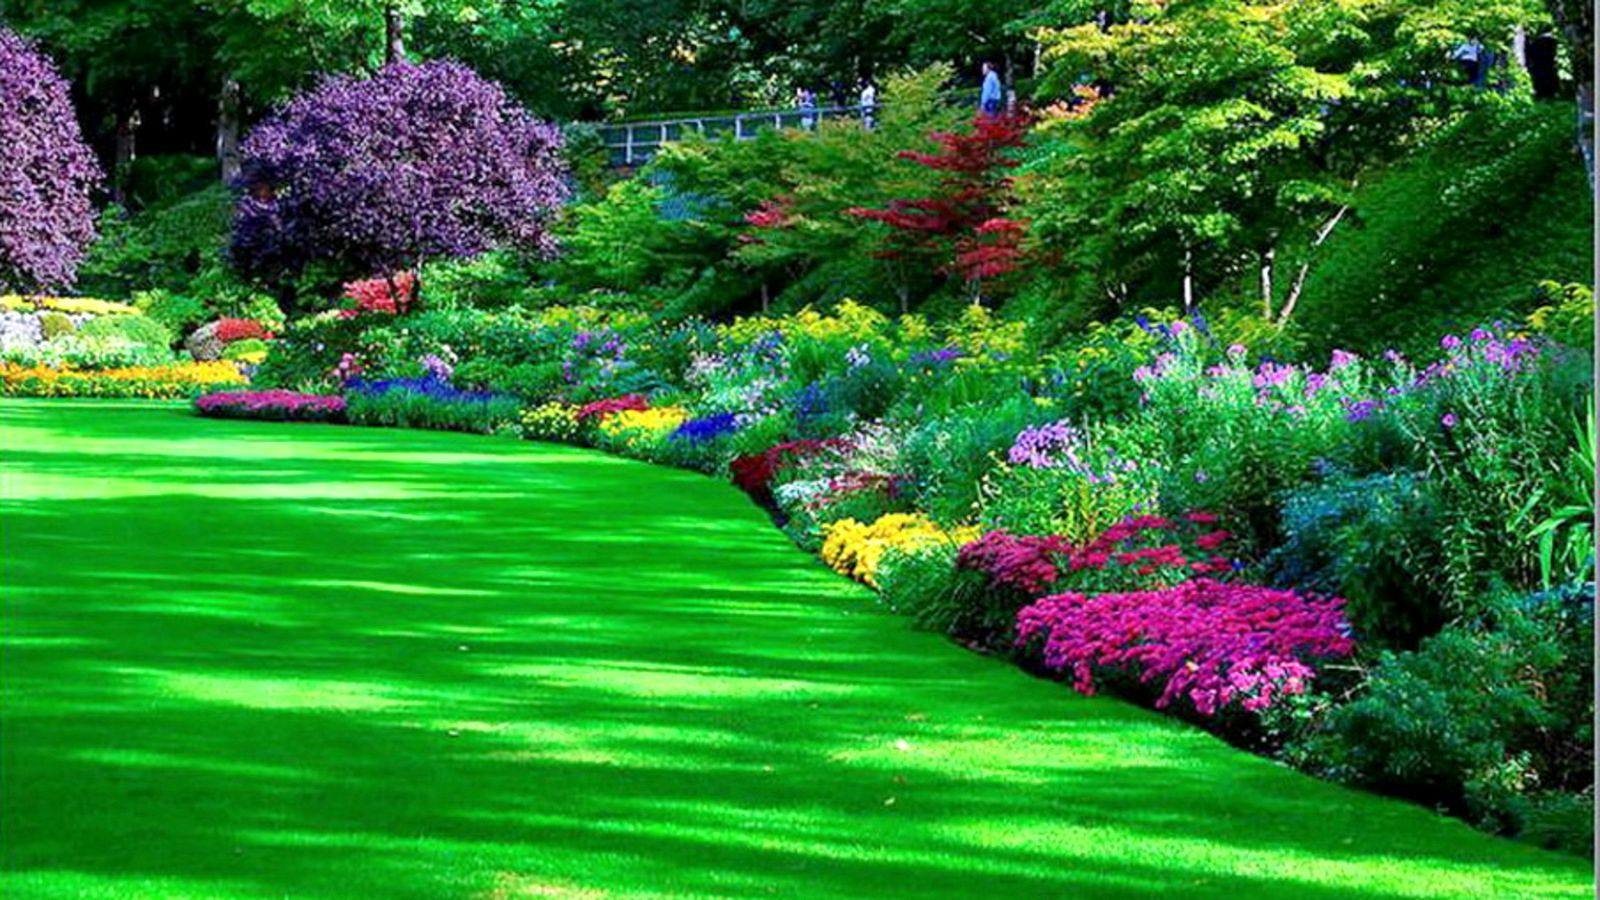 Garden Images Hd Free Download Garden Park HD Pretty